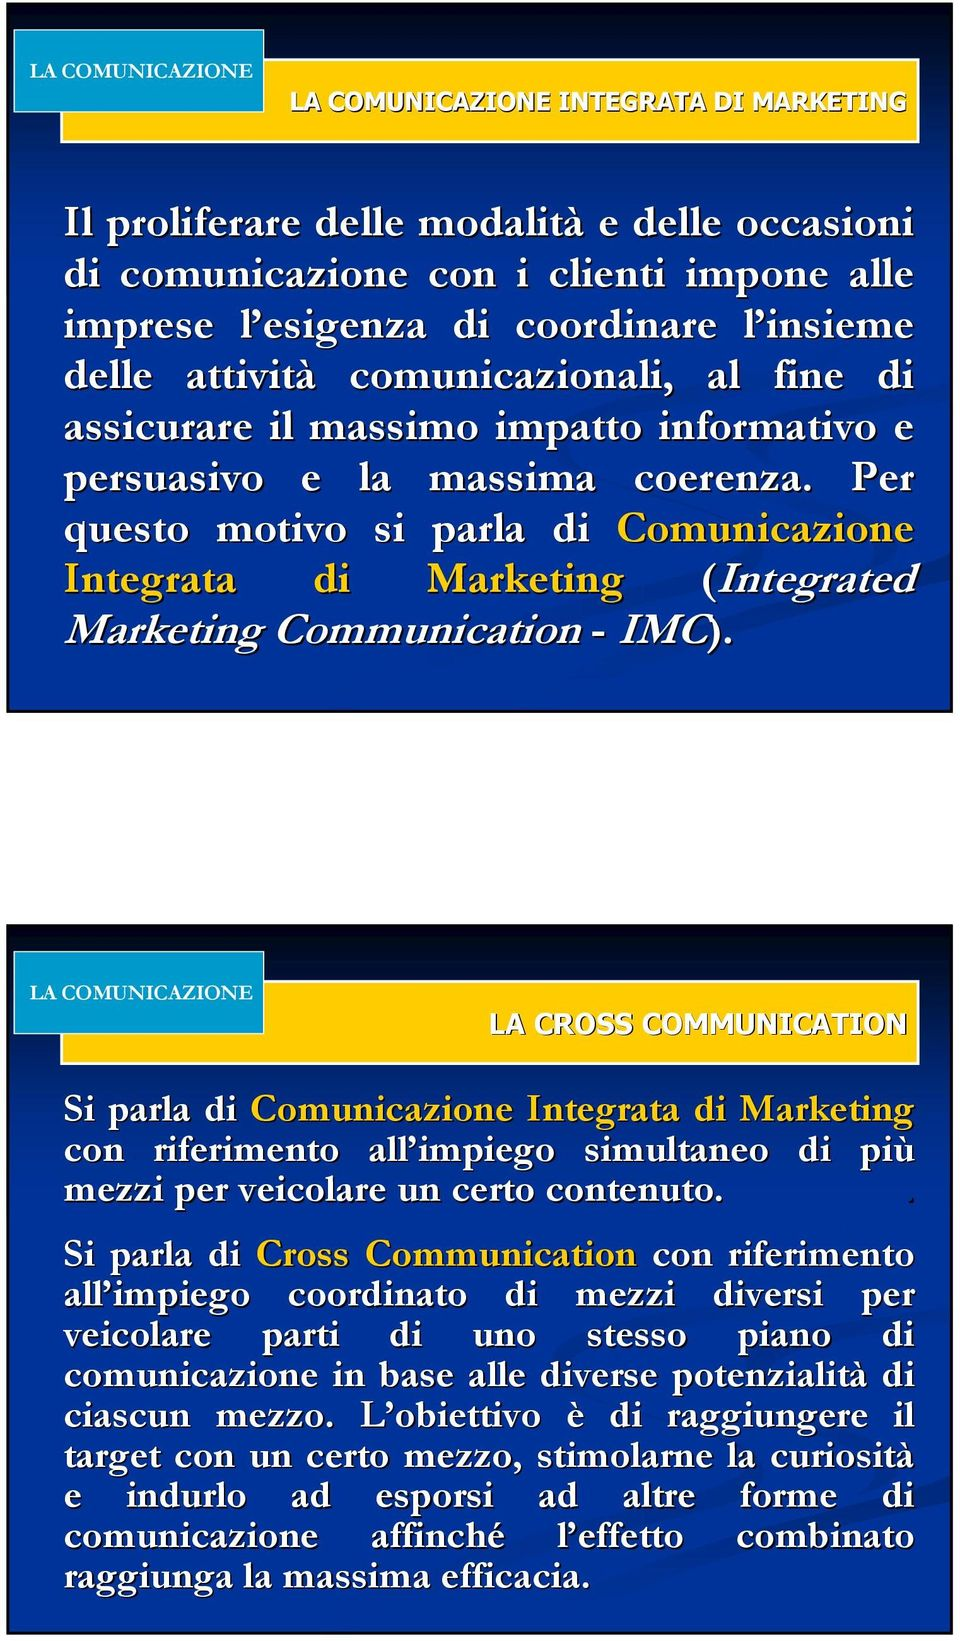 Per questo motivo si parla di Comunicazione Integrata di Marketing (Integrated Marketing Communication - IMC).